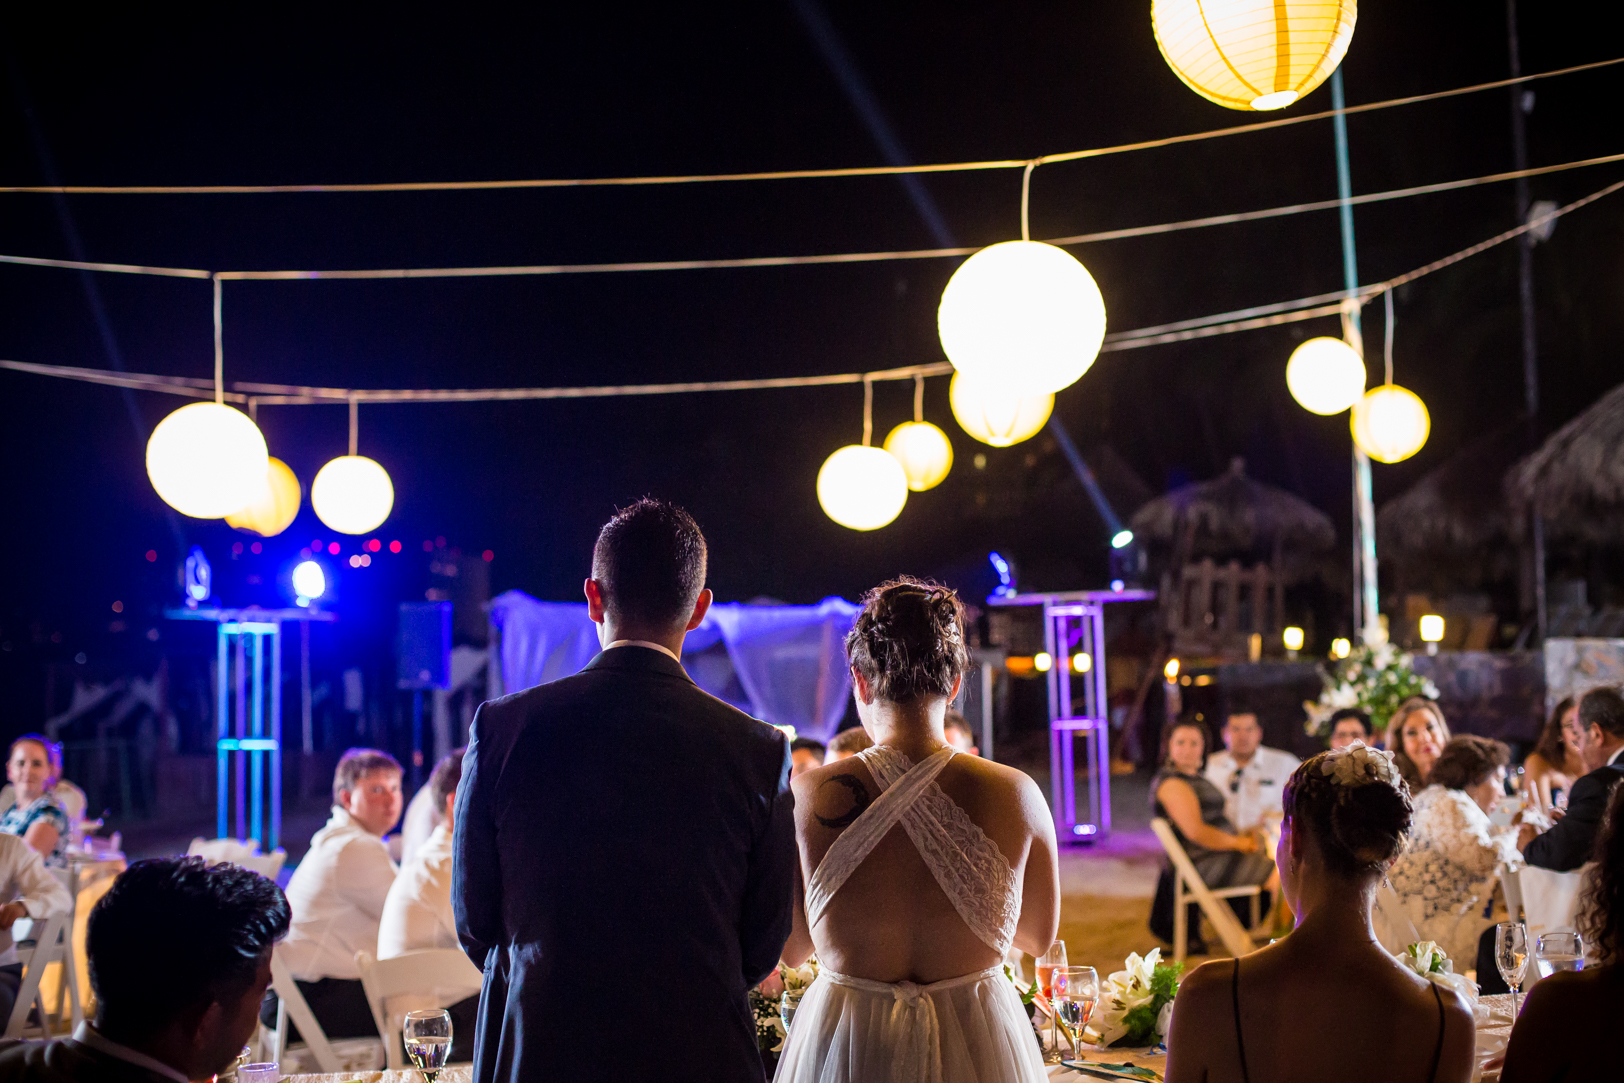 Bride and groom speech at their Sunscape Dorado Pacifico Ixtapa destination wedding